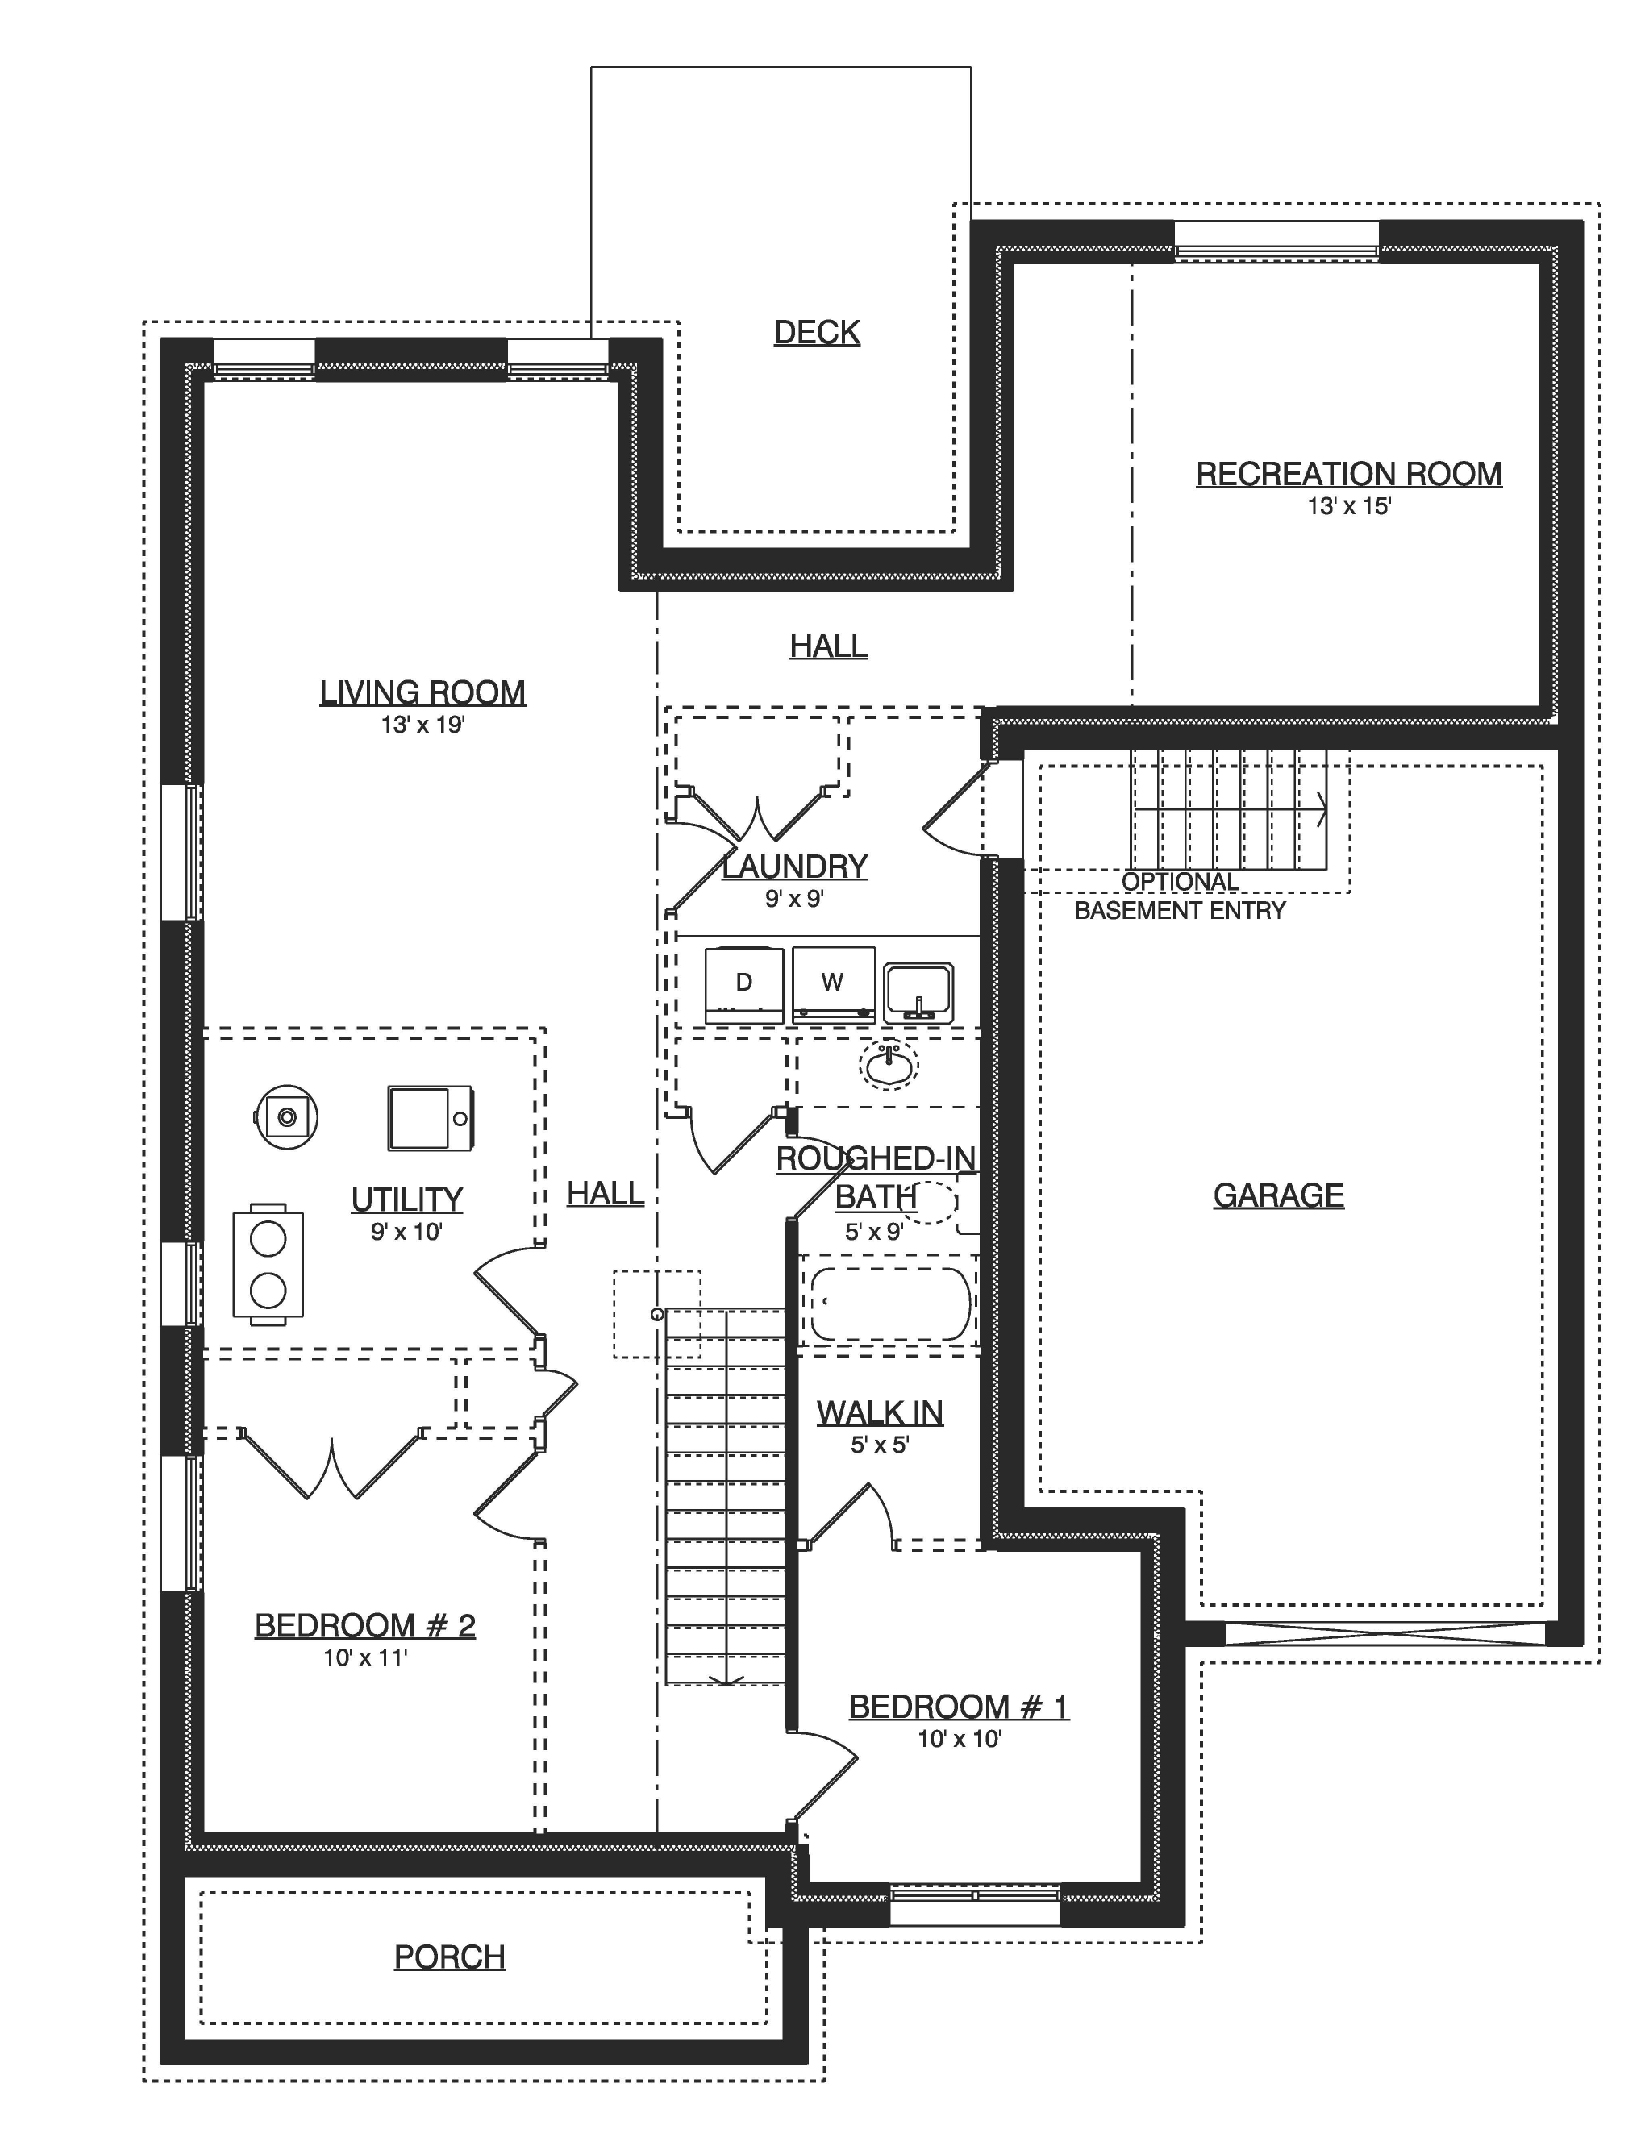 Floor Plan - Unfinished Basement